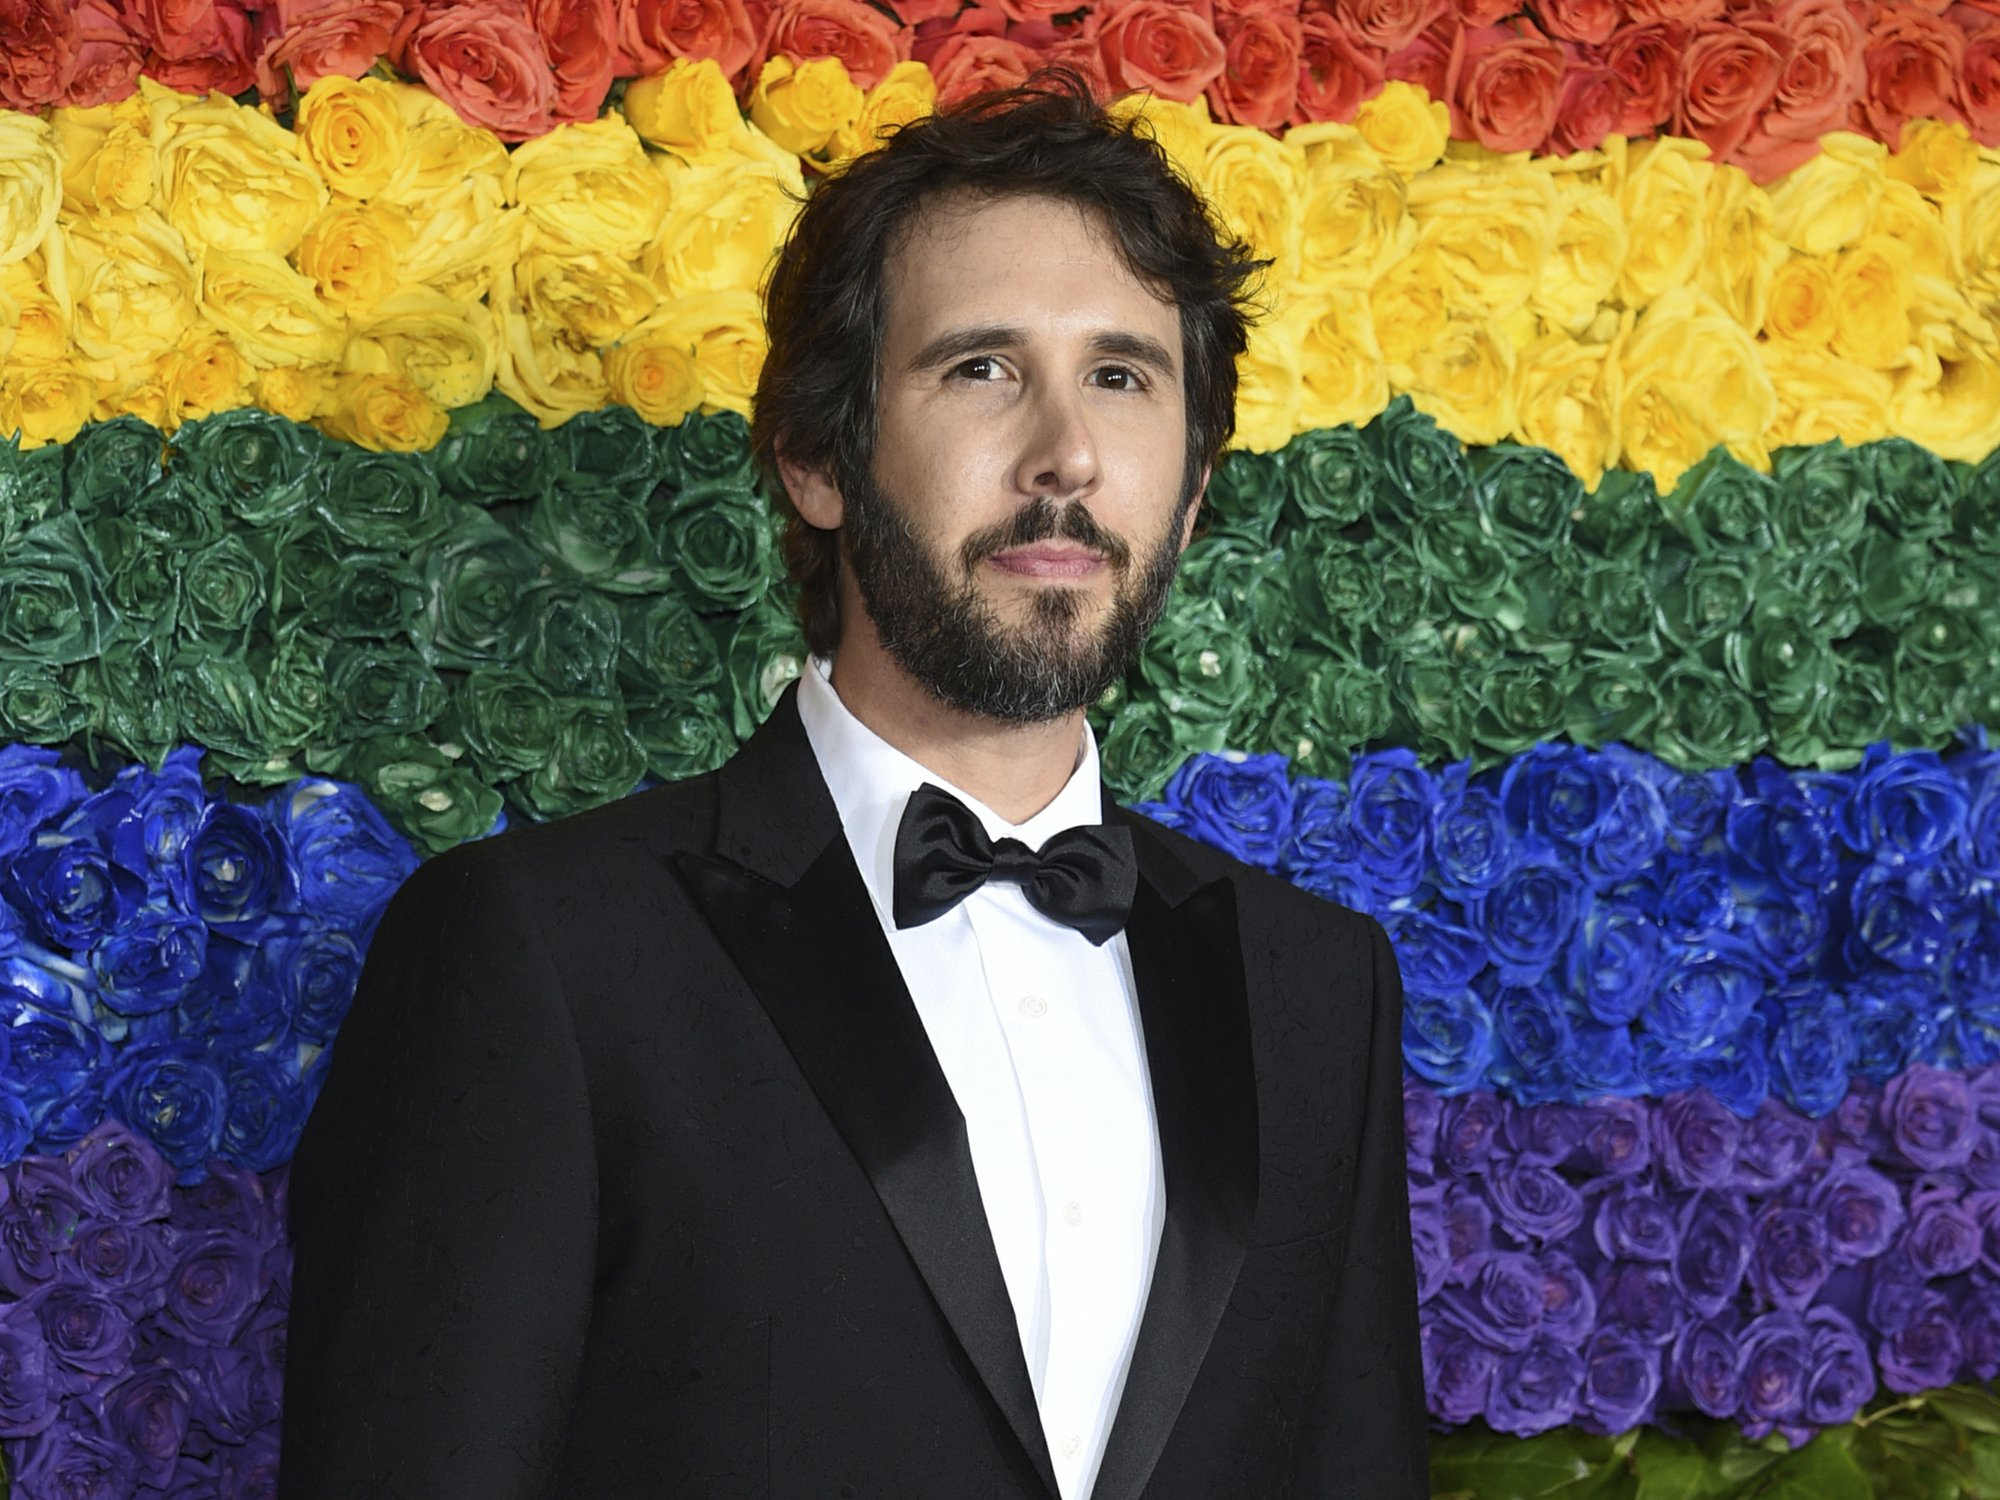 Josh Groban plans to 'let go' in upcoming show series